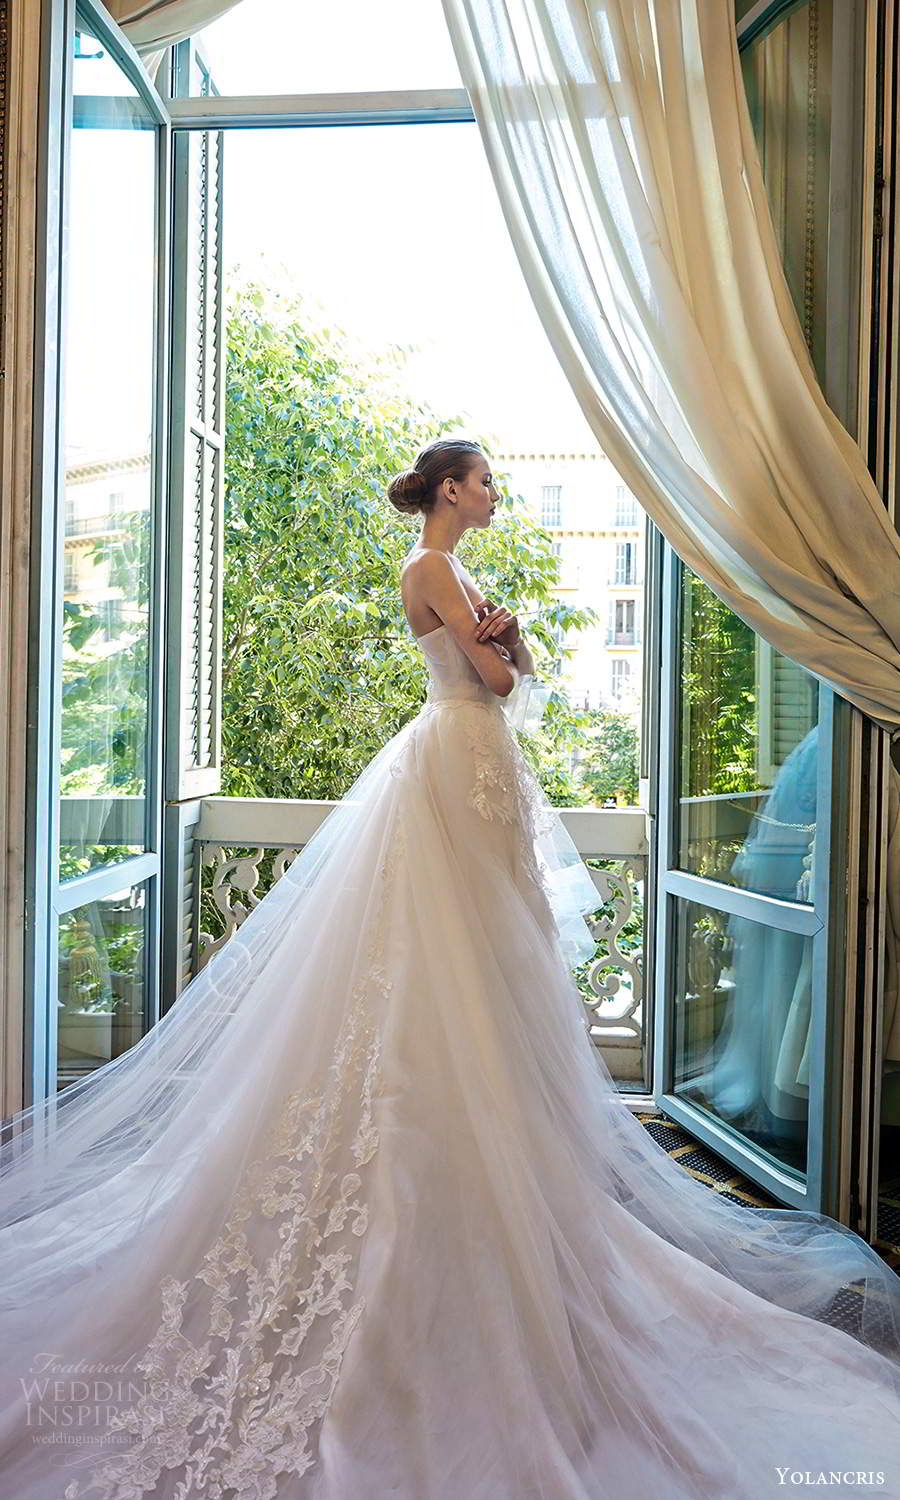 yolancris 2020 bridal couture strapless straight across neckline embellished a line ball gown wedding dress cathedral train (24) sv